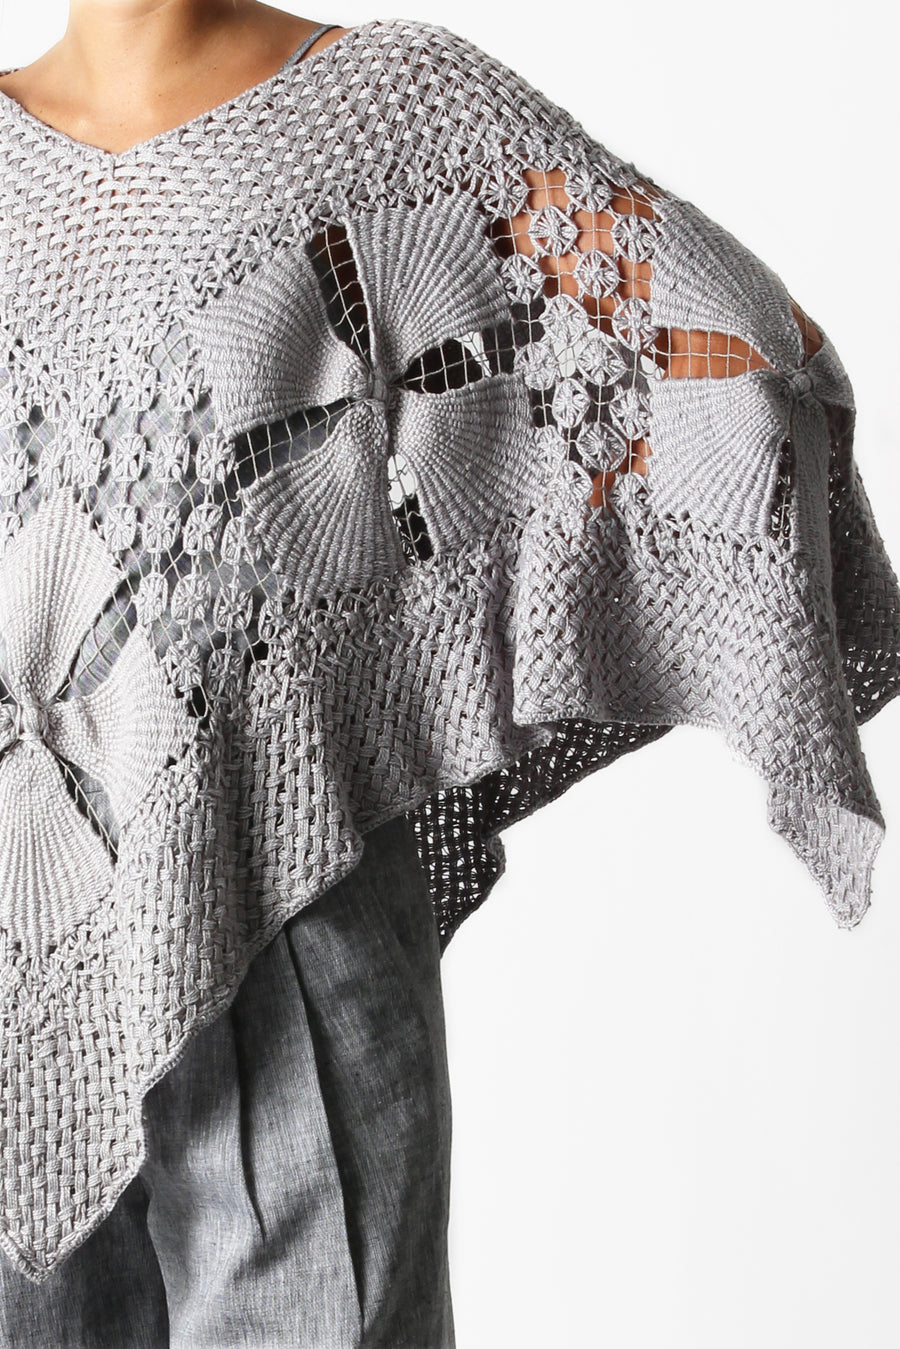 This is a detail photo of a handmade shawl from Brazil with geometric floral details.